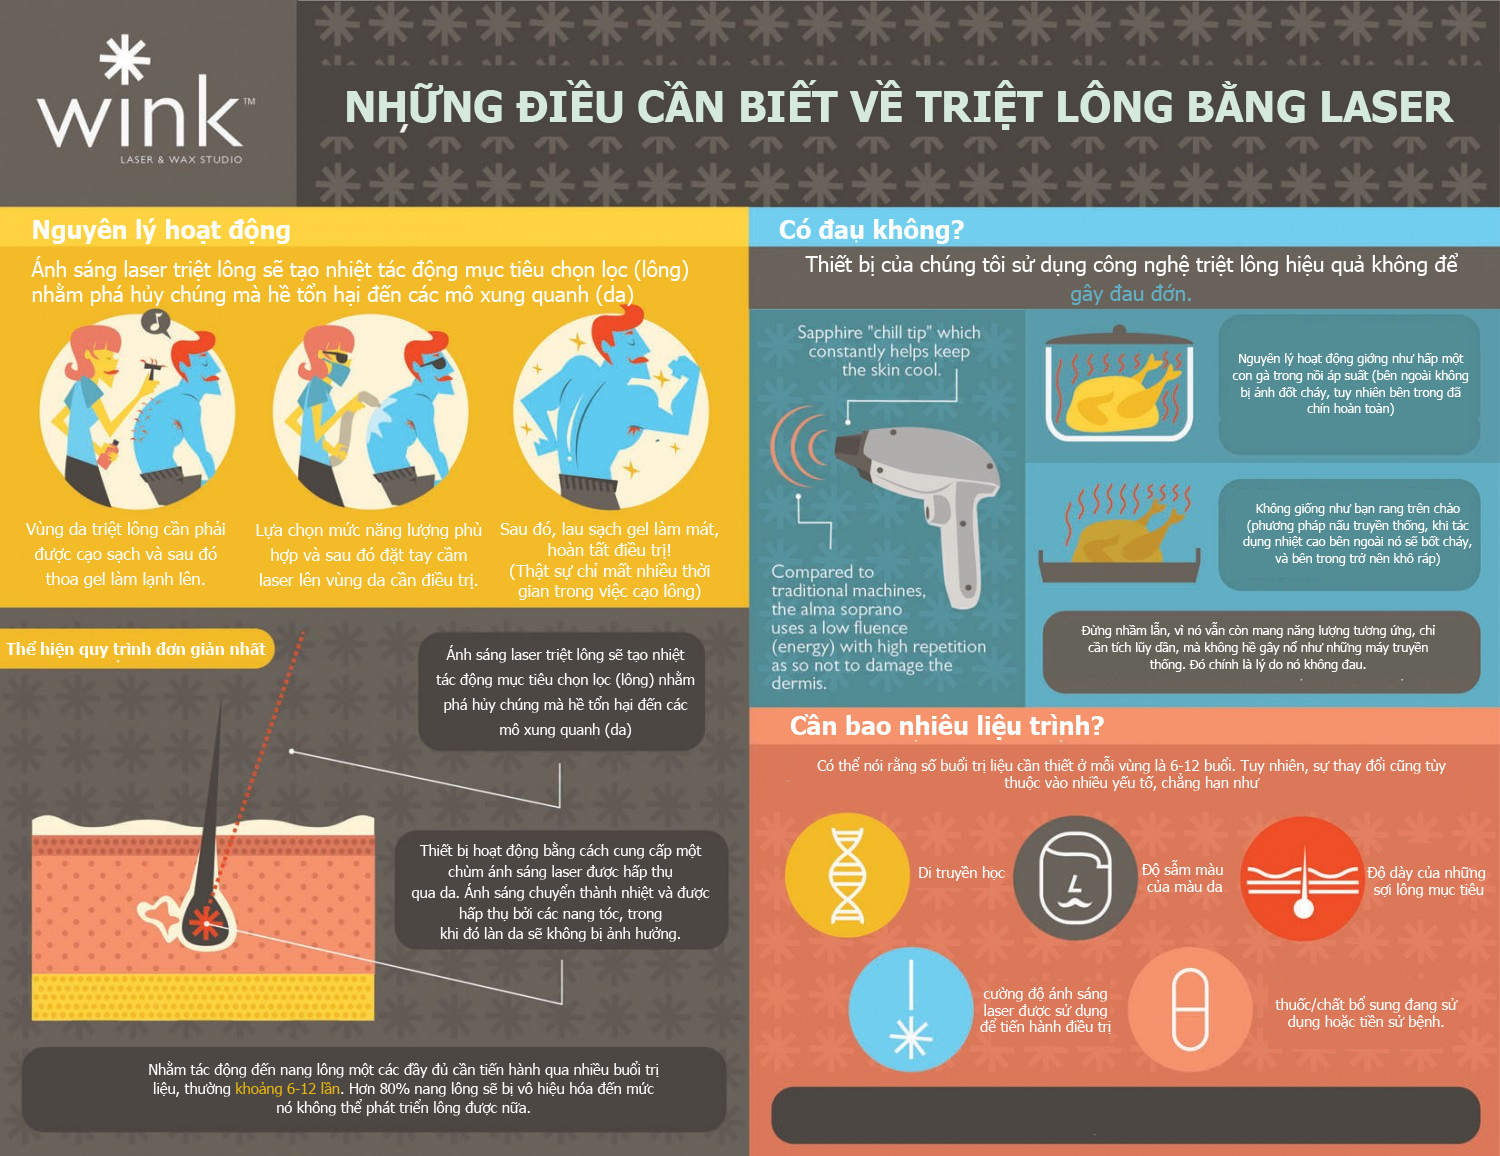 1-nhung-dieu-can-biet-ve-triet-long-bang-laser